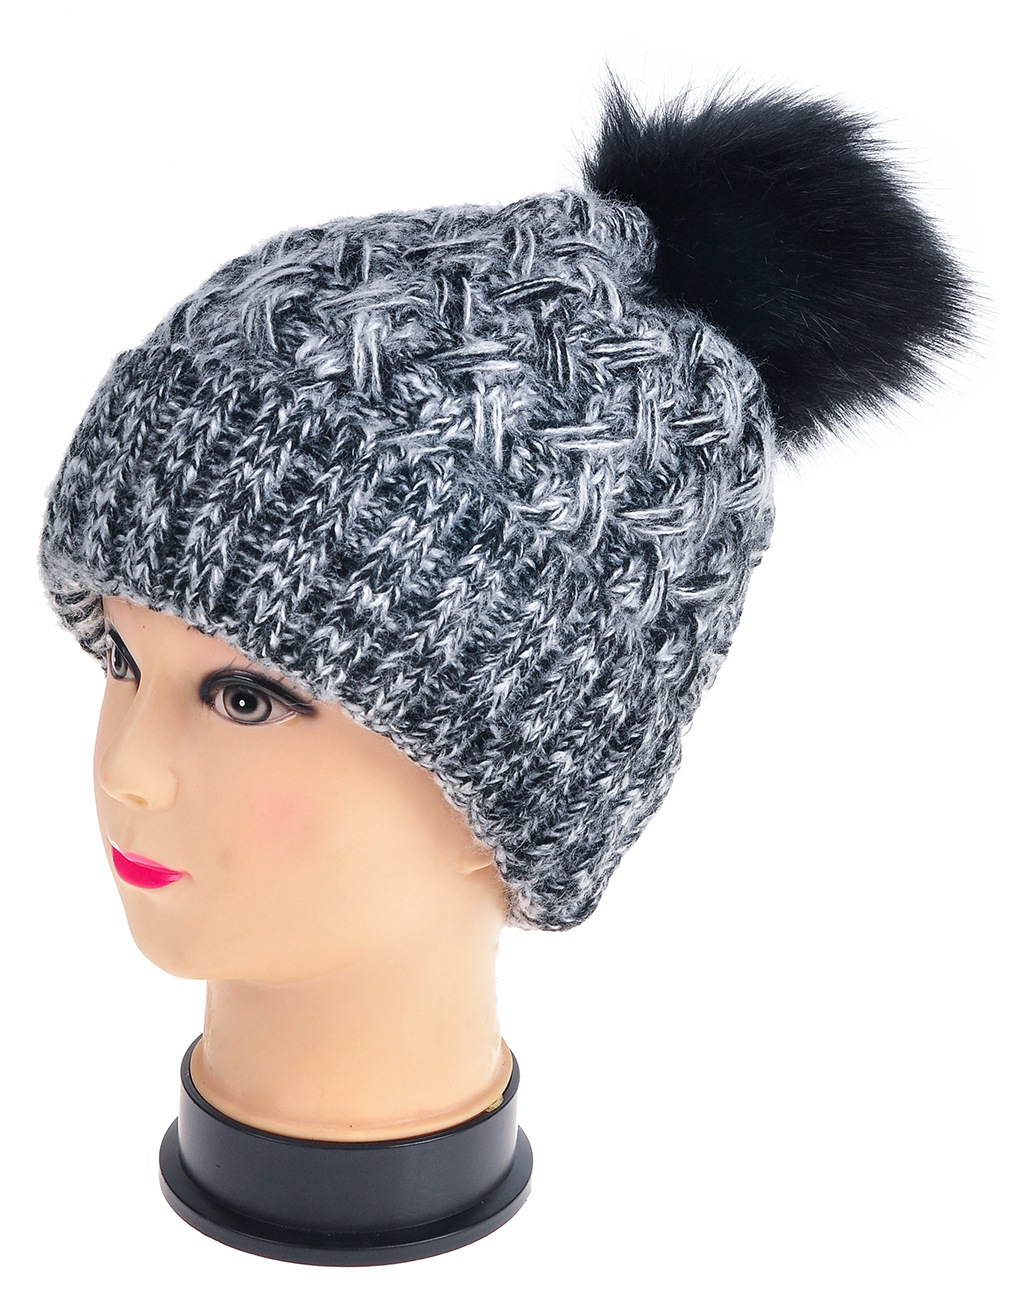 c153b2f1d778d Twisted Twill Pompom Beanie Hats - Luxe Wholesale